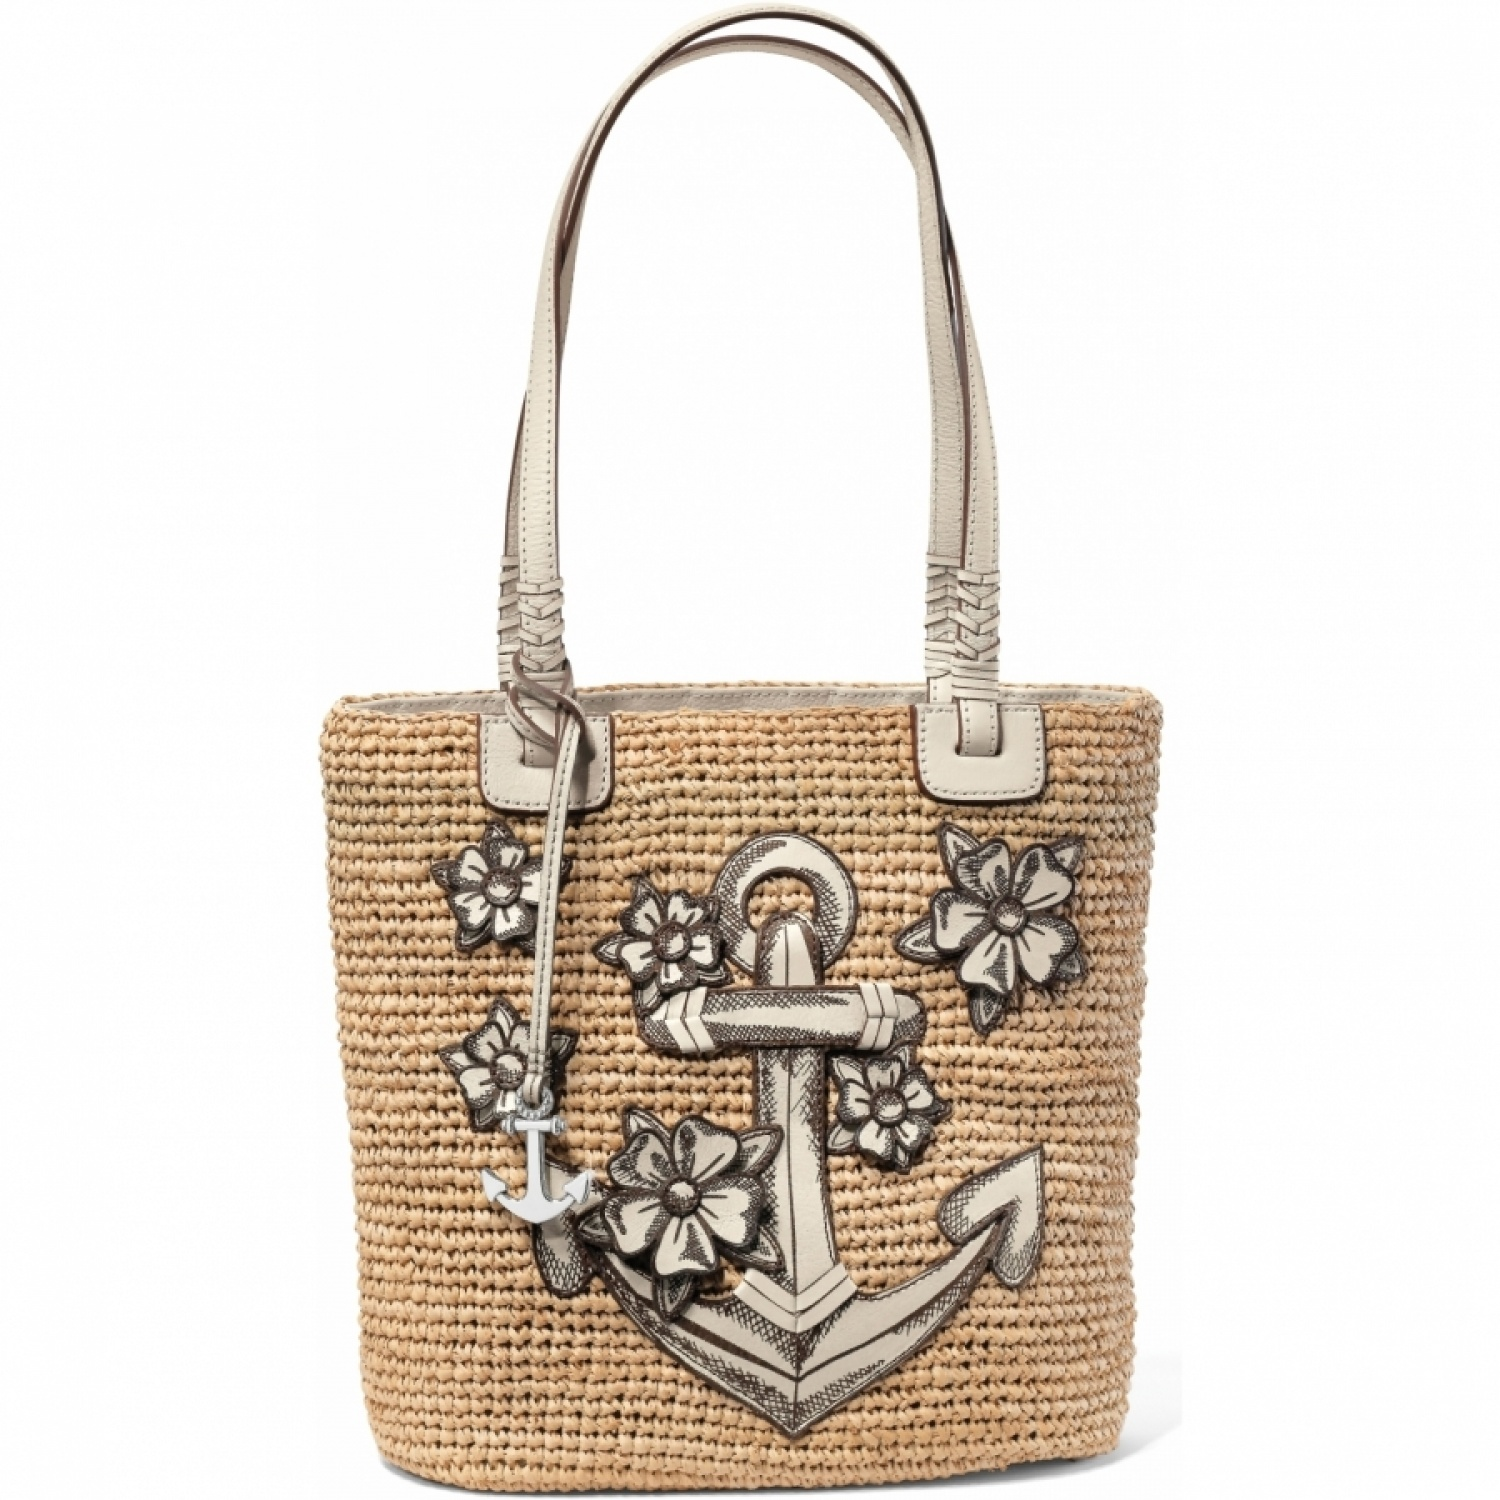 Home Handbags Straw Dockside Straw Tote